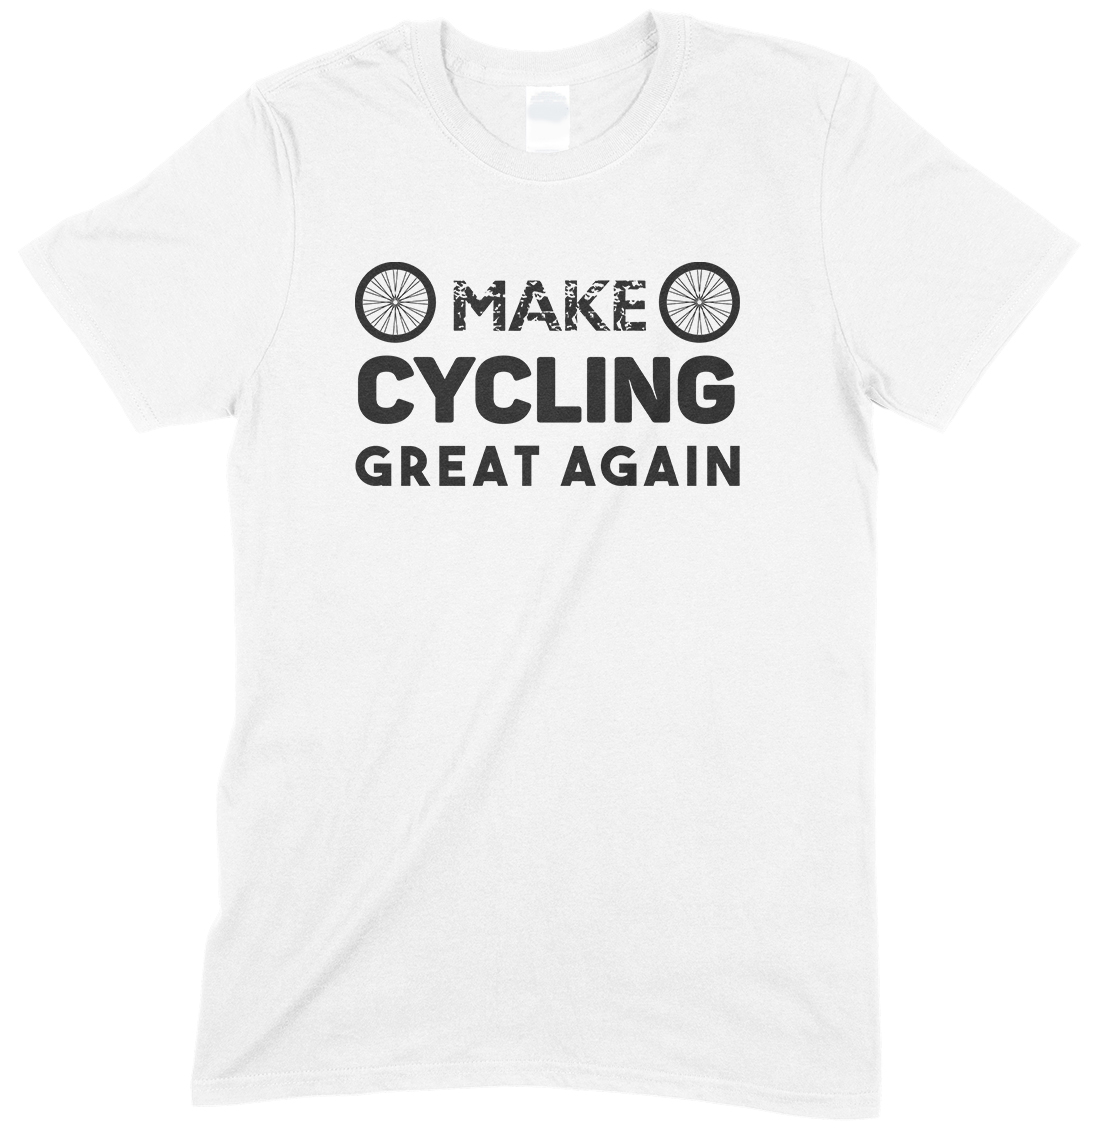 Make Cycling Great Again - Child's T Shirt